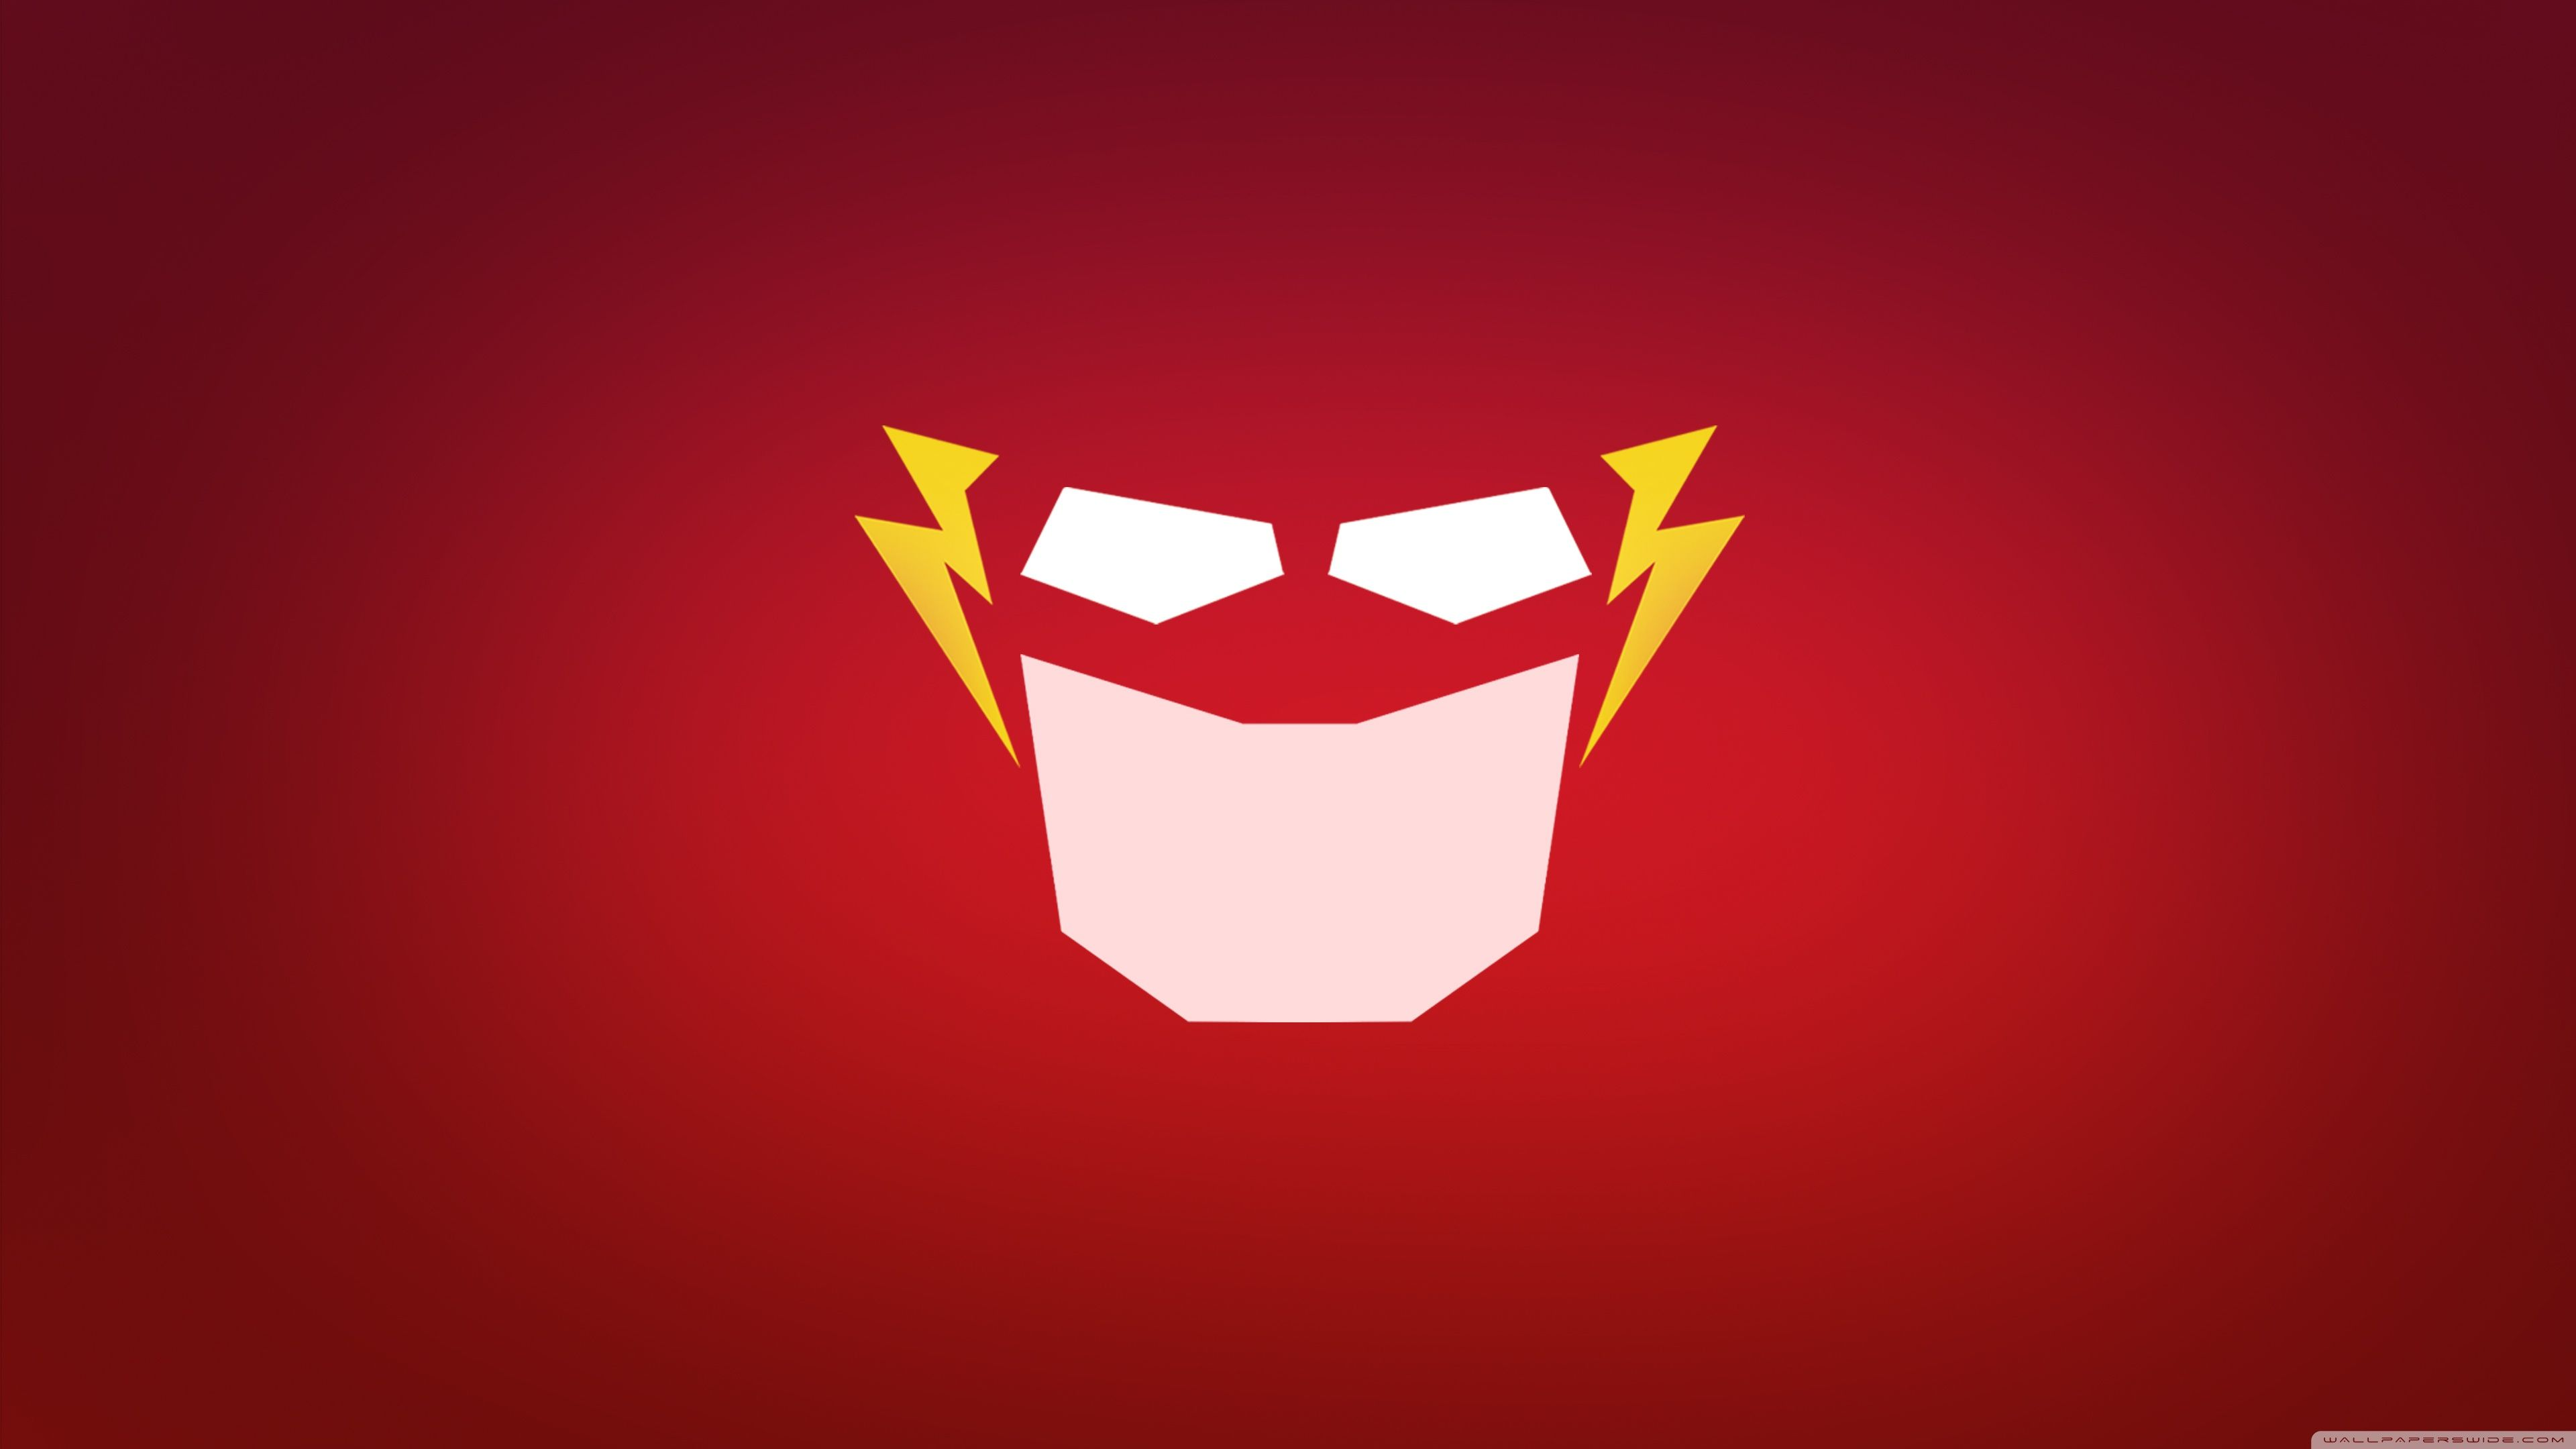 Cool Flash Wallpapers Flash wallpaper, The flash, 1080p